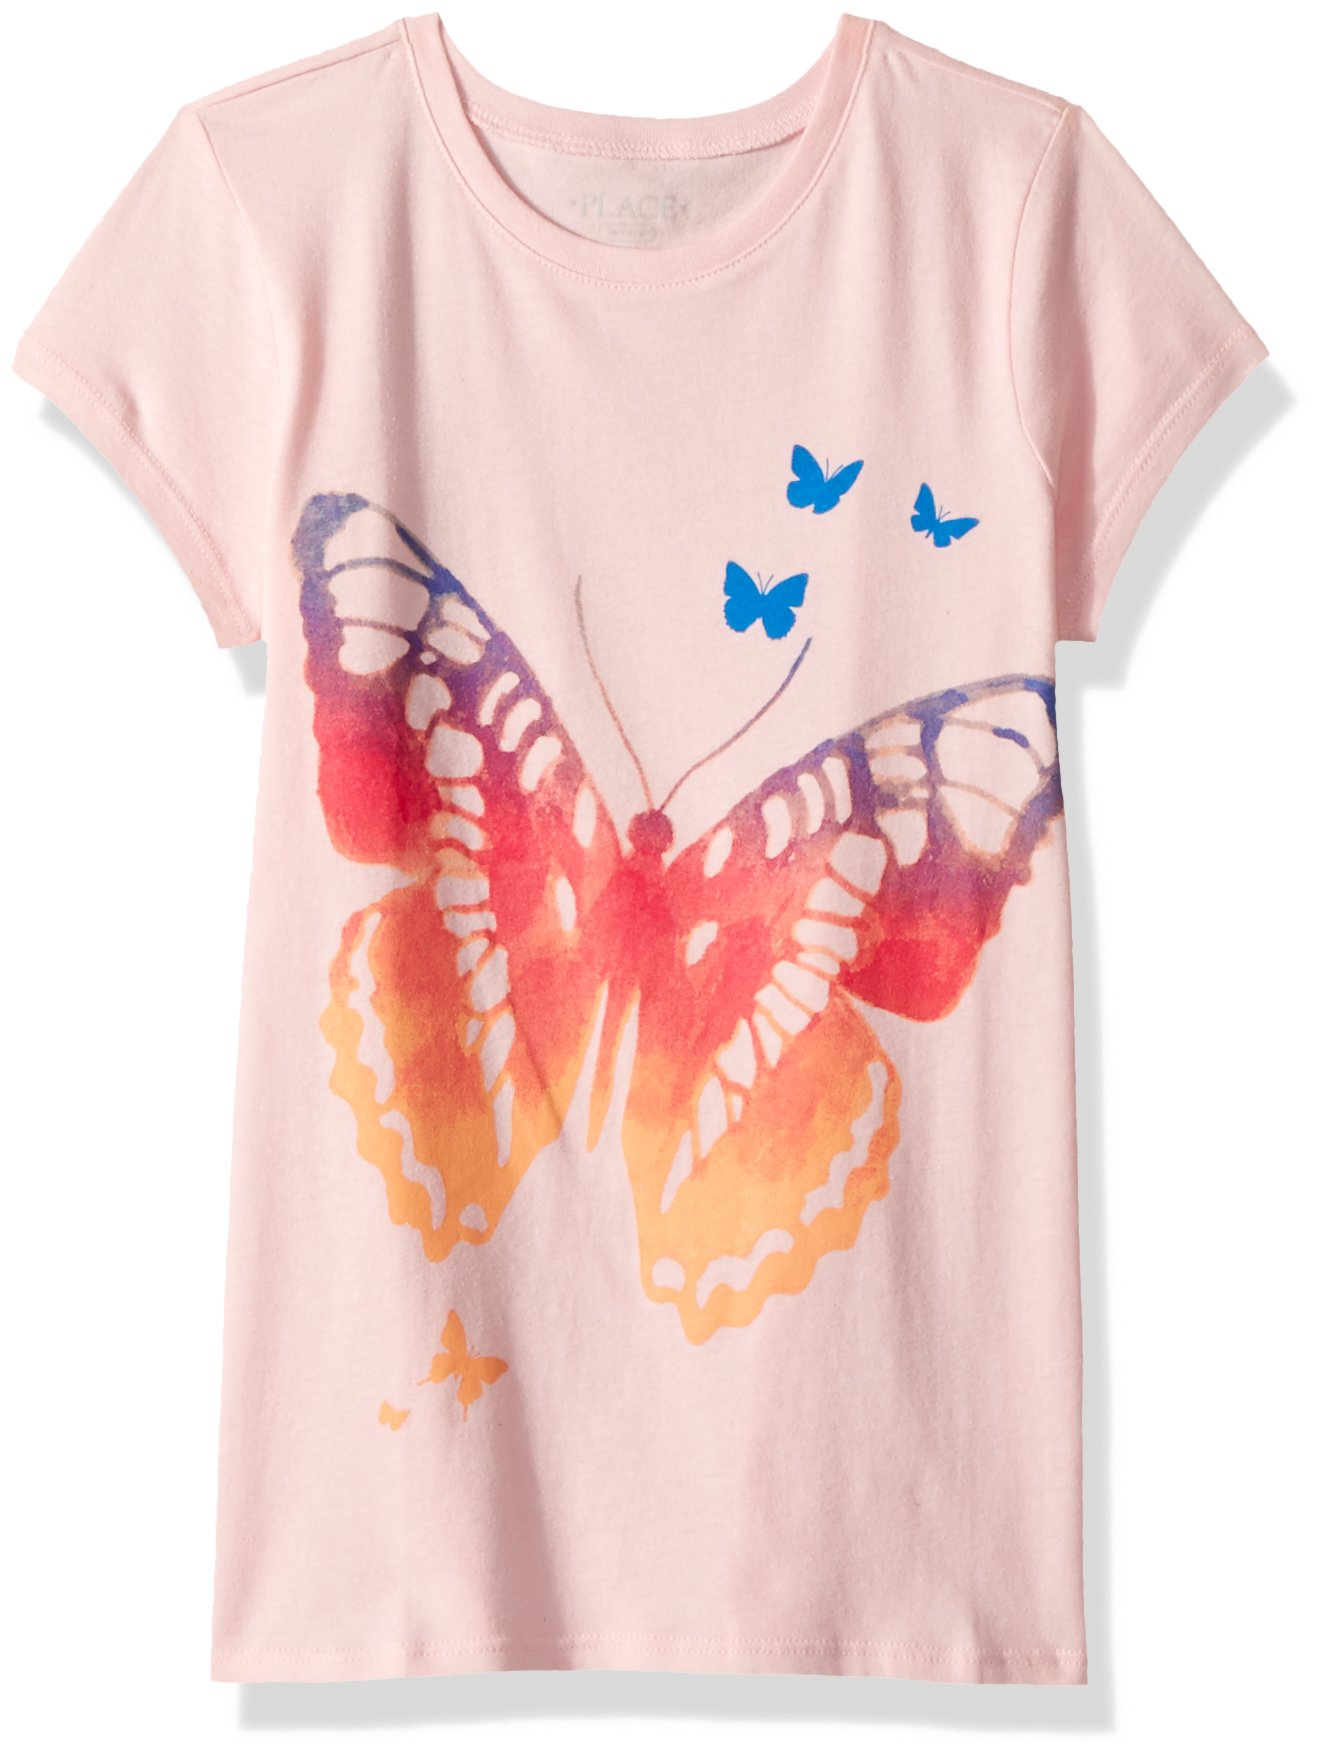 The Children's Place Big Girls' Short Sleeve Graphic Tee